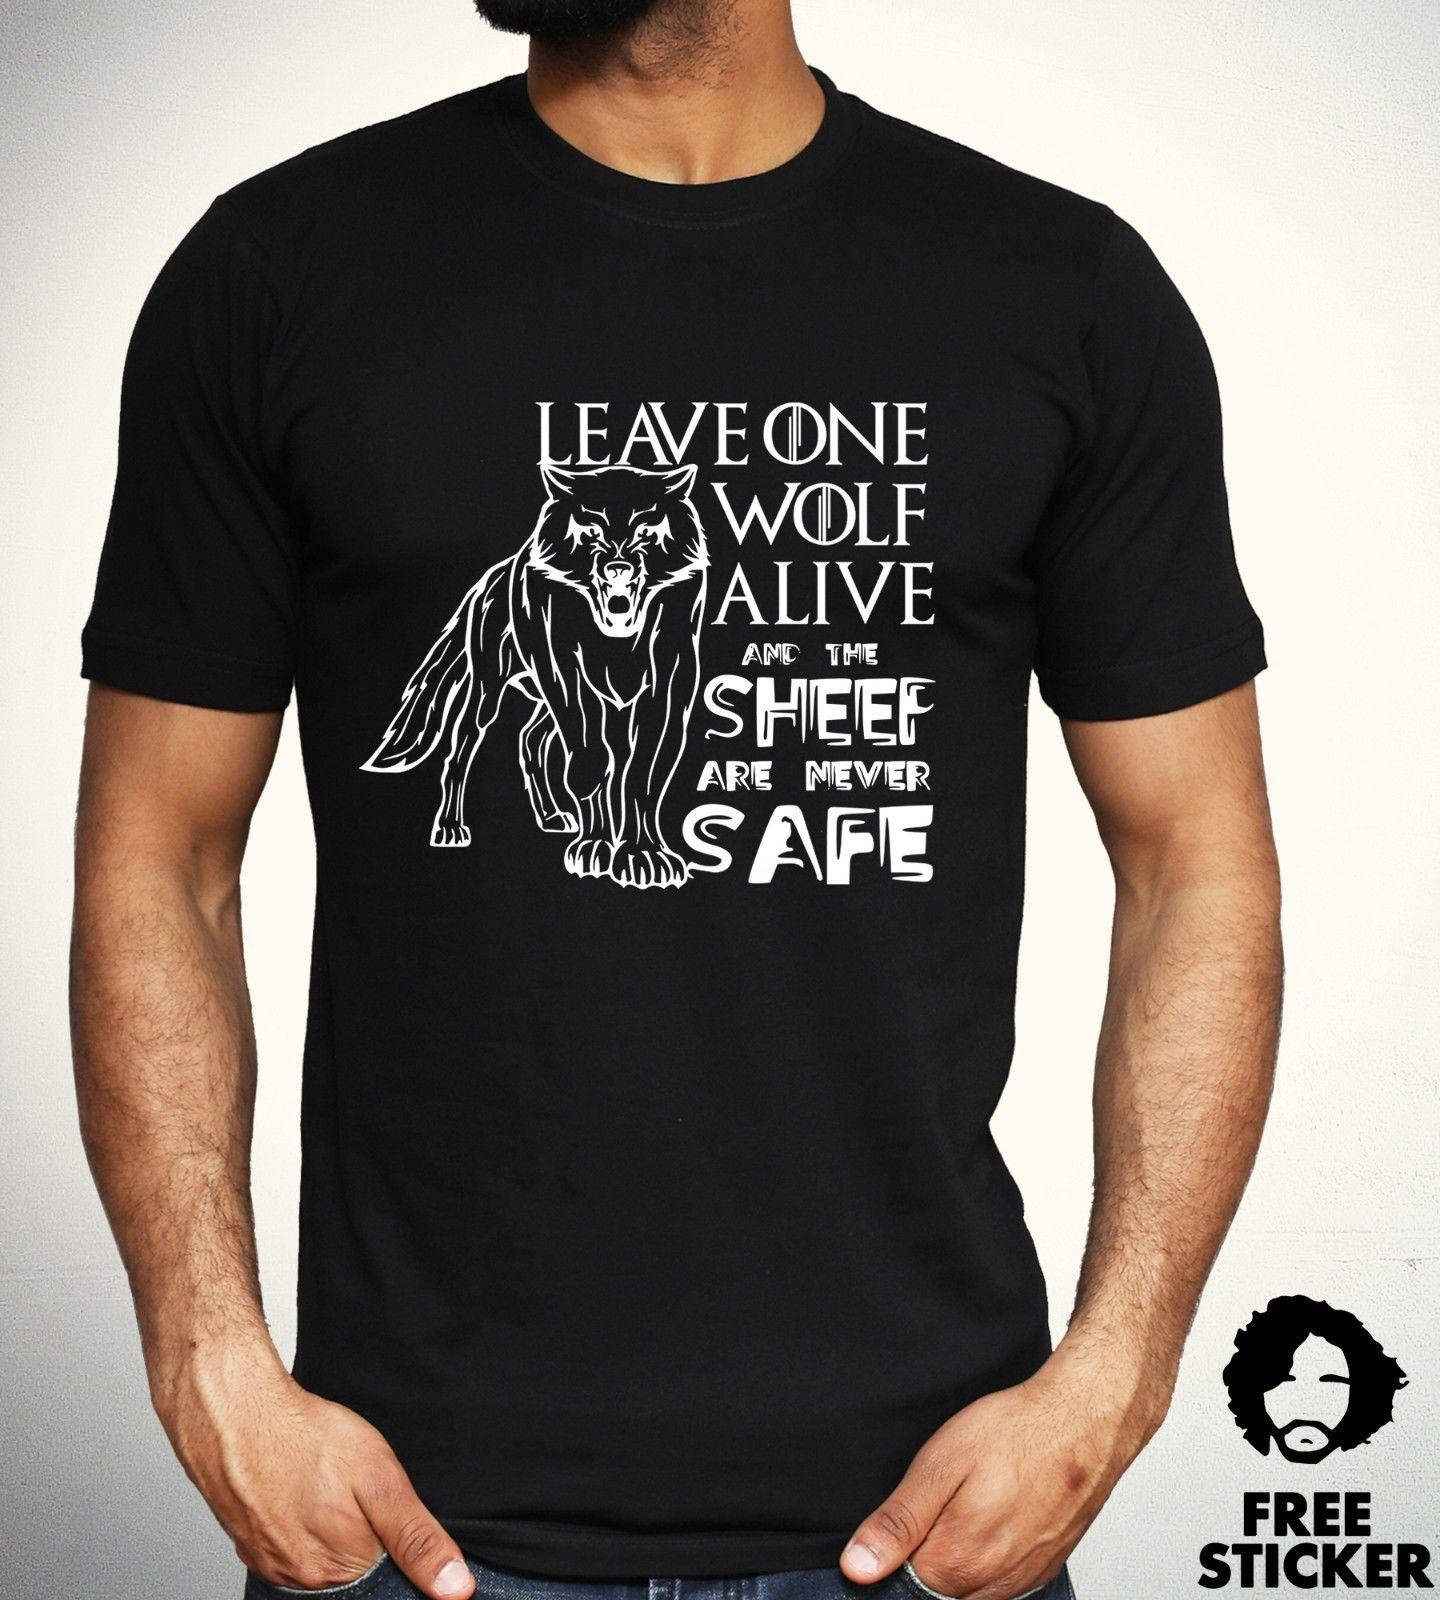 aed460317 Game Of Thrones Lone Wolf T Shirt House Stark Jon Snow TV Series Gift Top  Mens Summer Hot Sale ,New Tee Print ,Men T Shirt Top , Cool T Shirts  Designs Make ...